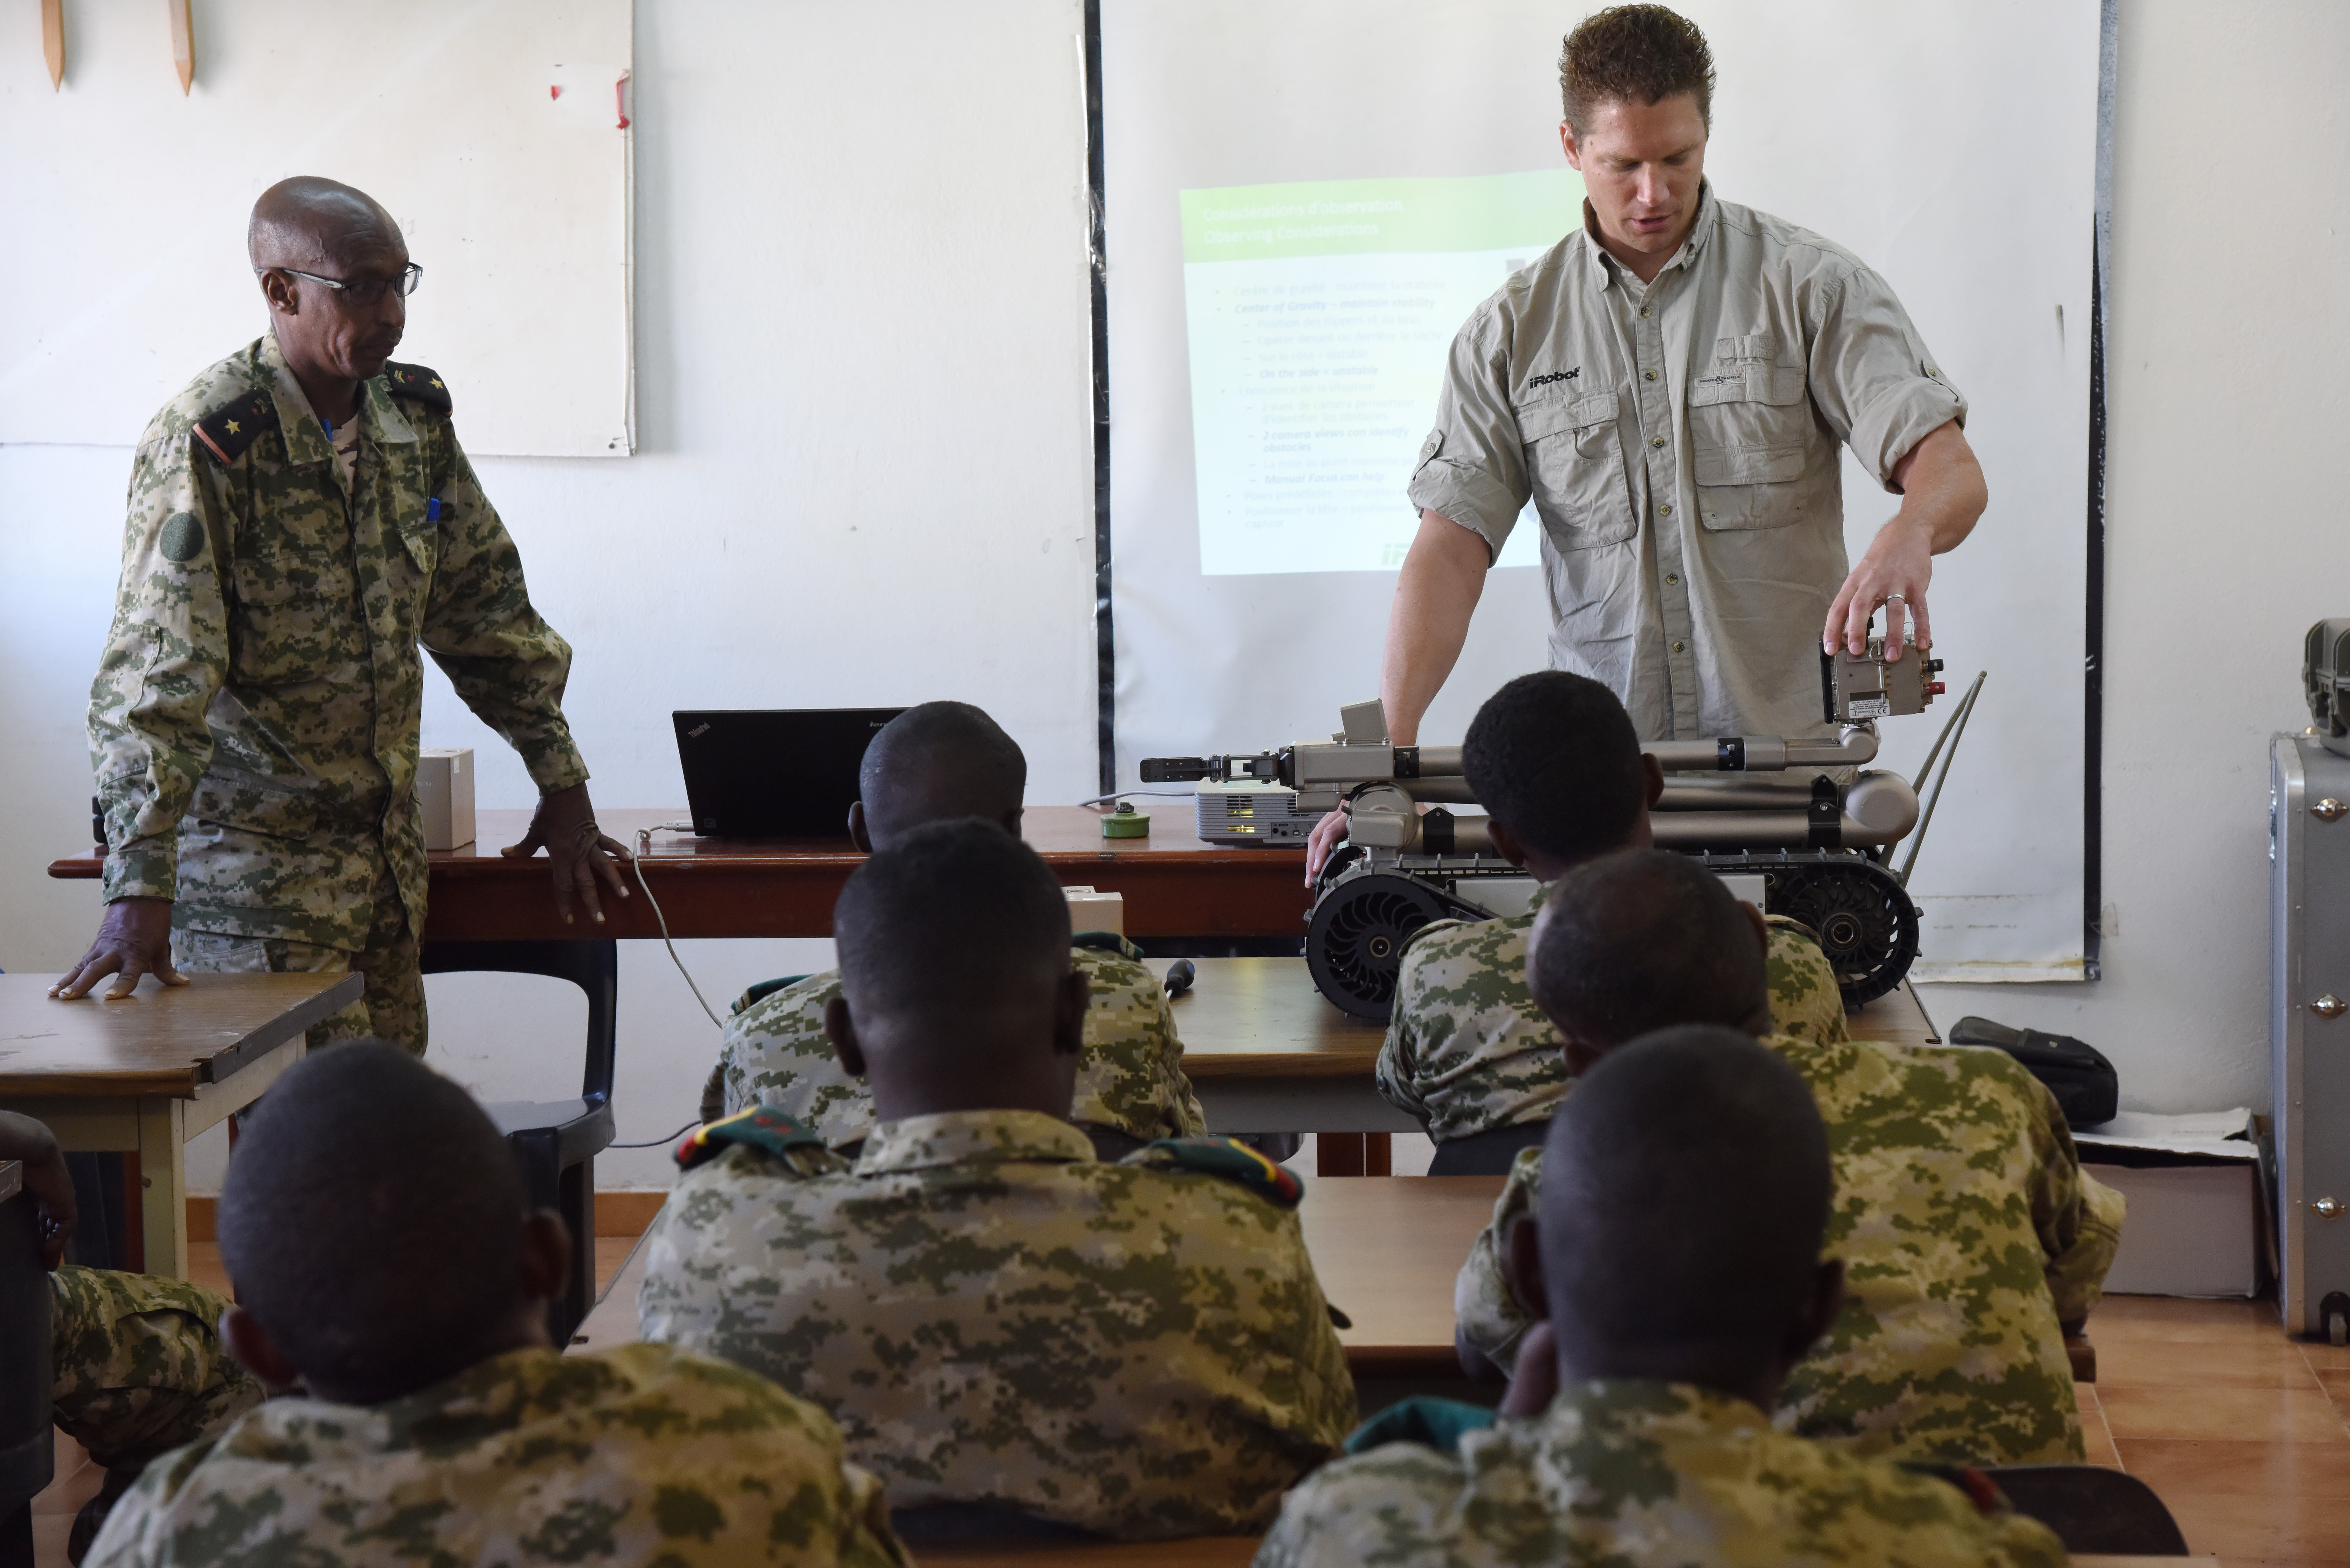 Joseph Brunette, iRobot instructor, leads a class on the 510 Packbot to Djibouti Armed Forces (FAD) service members Oct. 12, 2015 in Djibouti.  The robot can perform bomb disposal, surveillance and reconnaissance operations.  (U.S. Air Force photo by Staff Sgt. Maria Bowman)